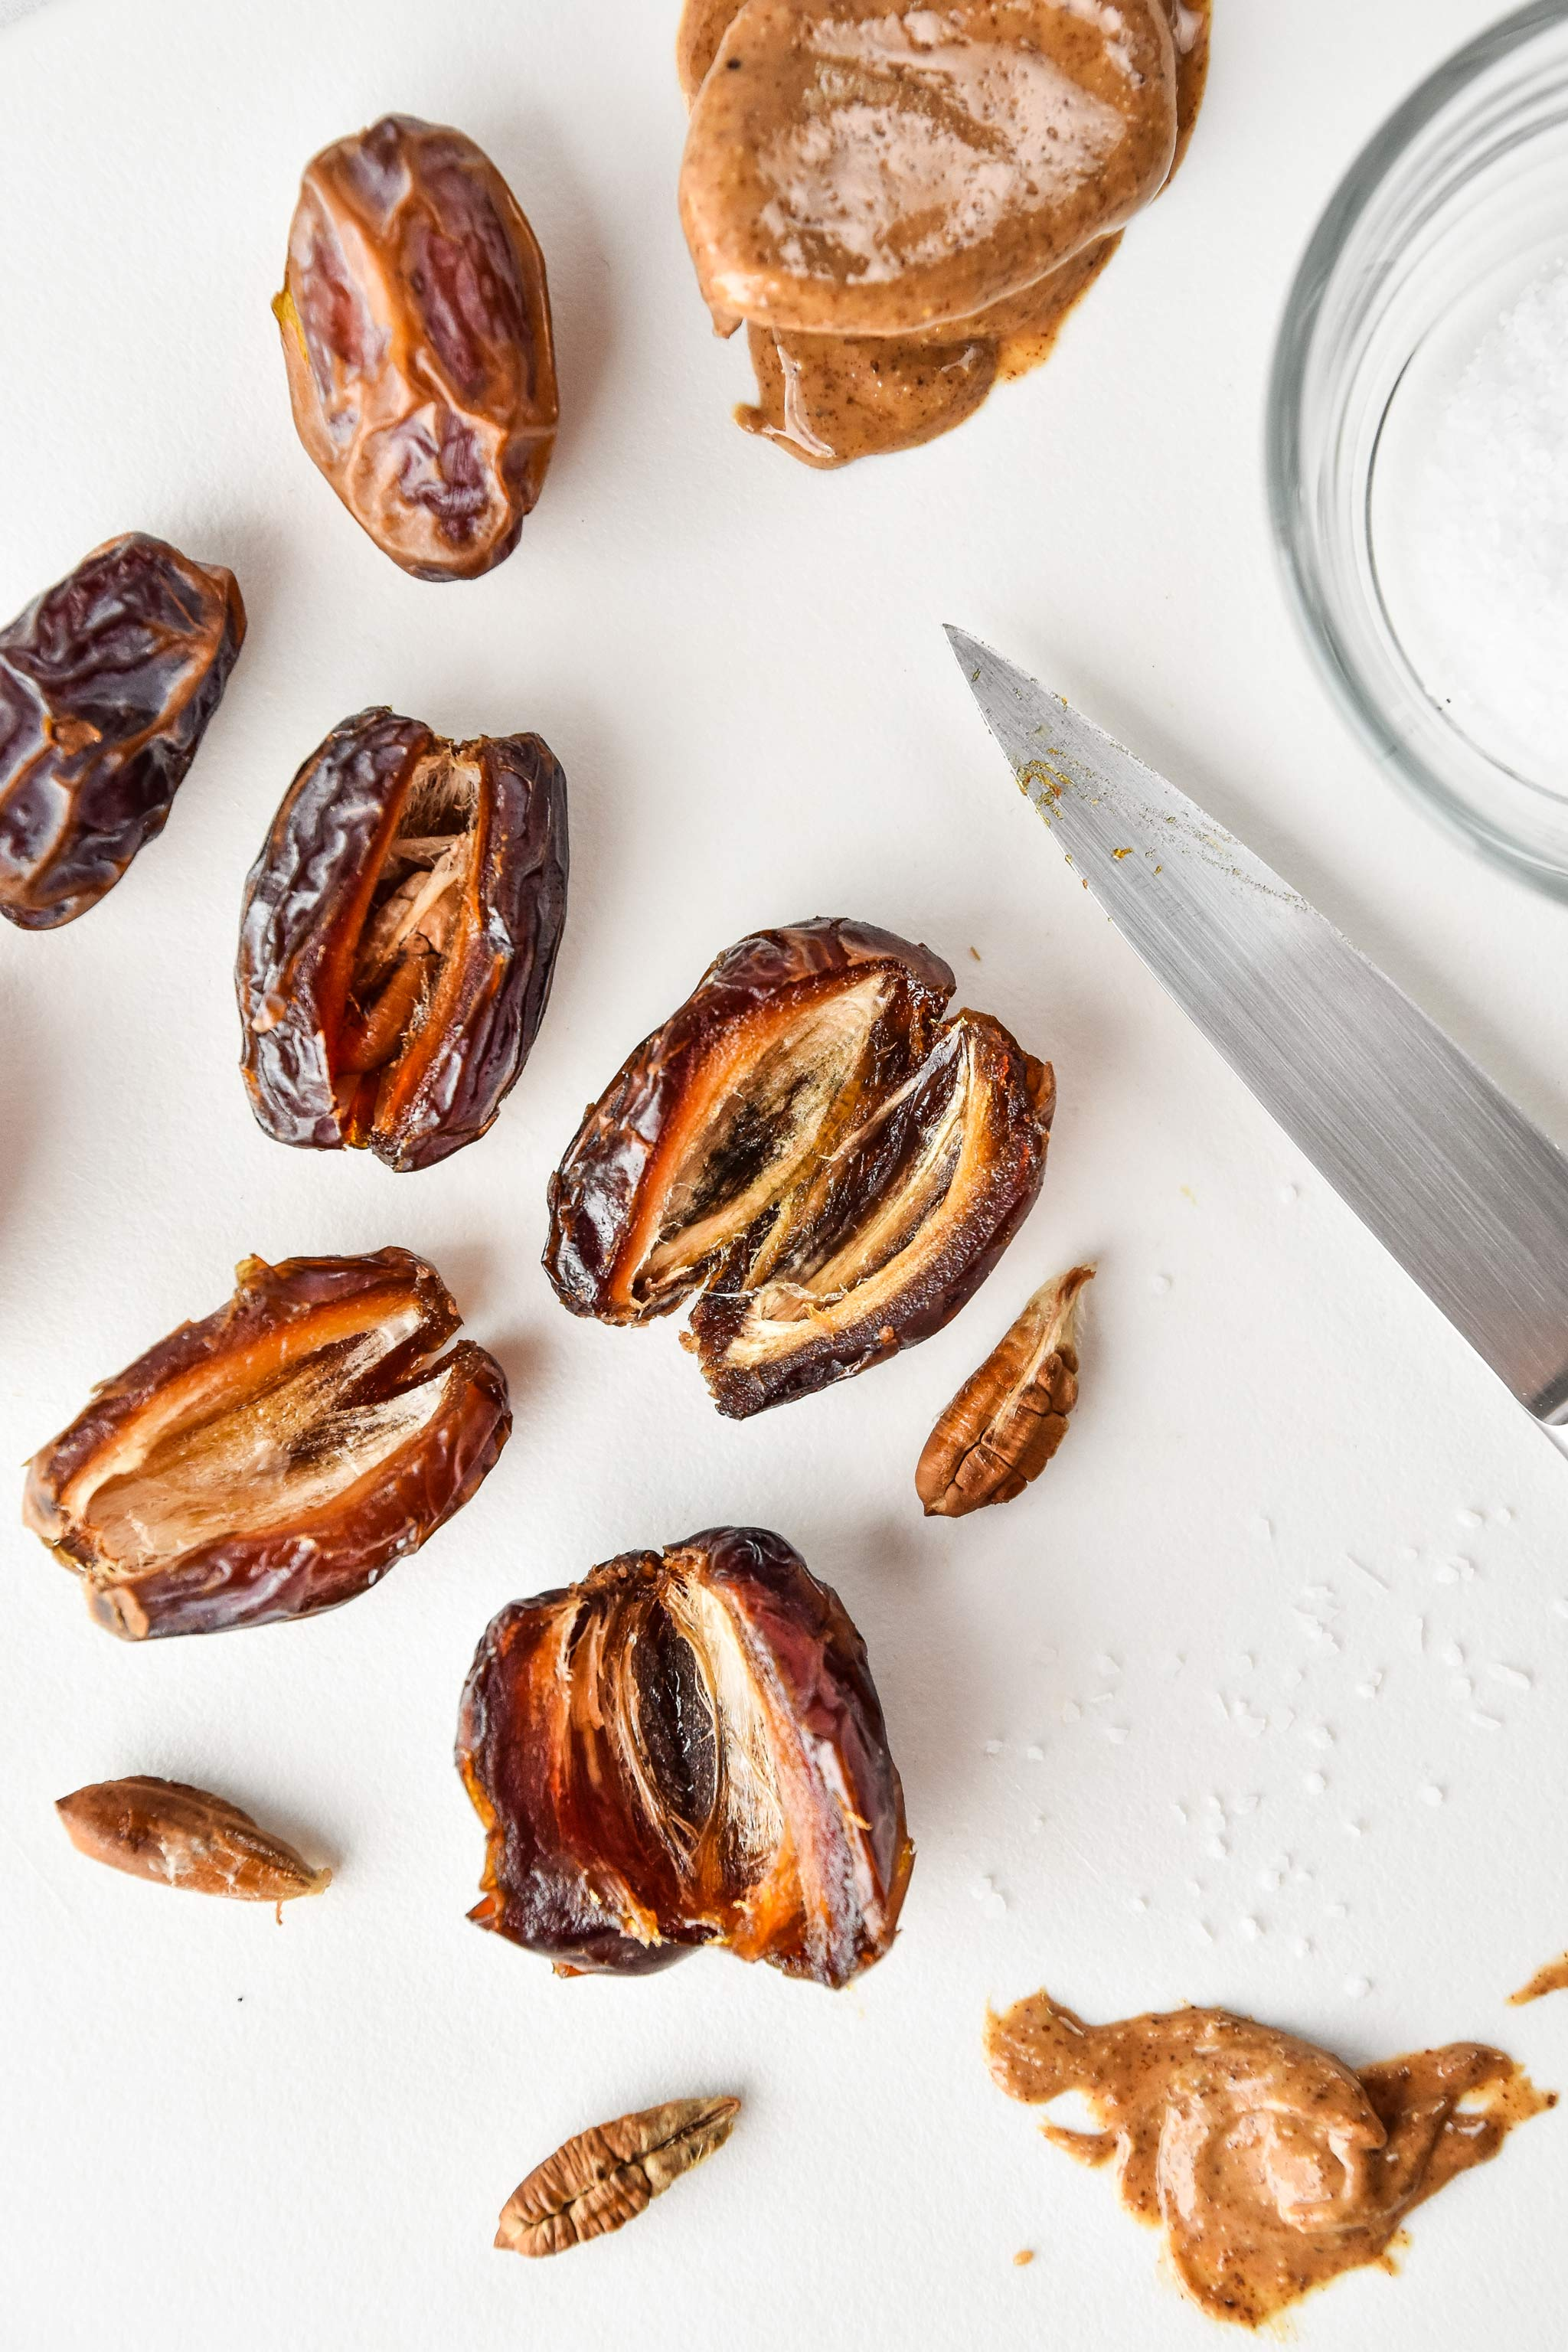 medjool dates with the pits removed ready to be stuffed with almond butter